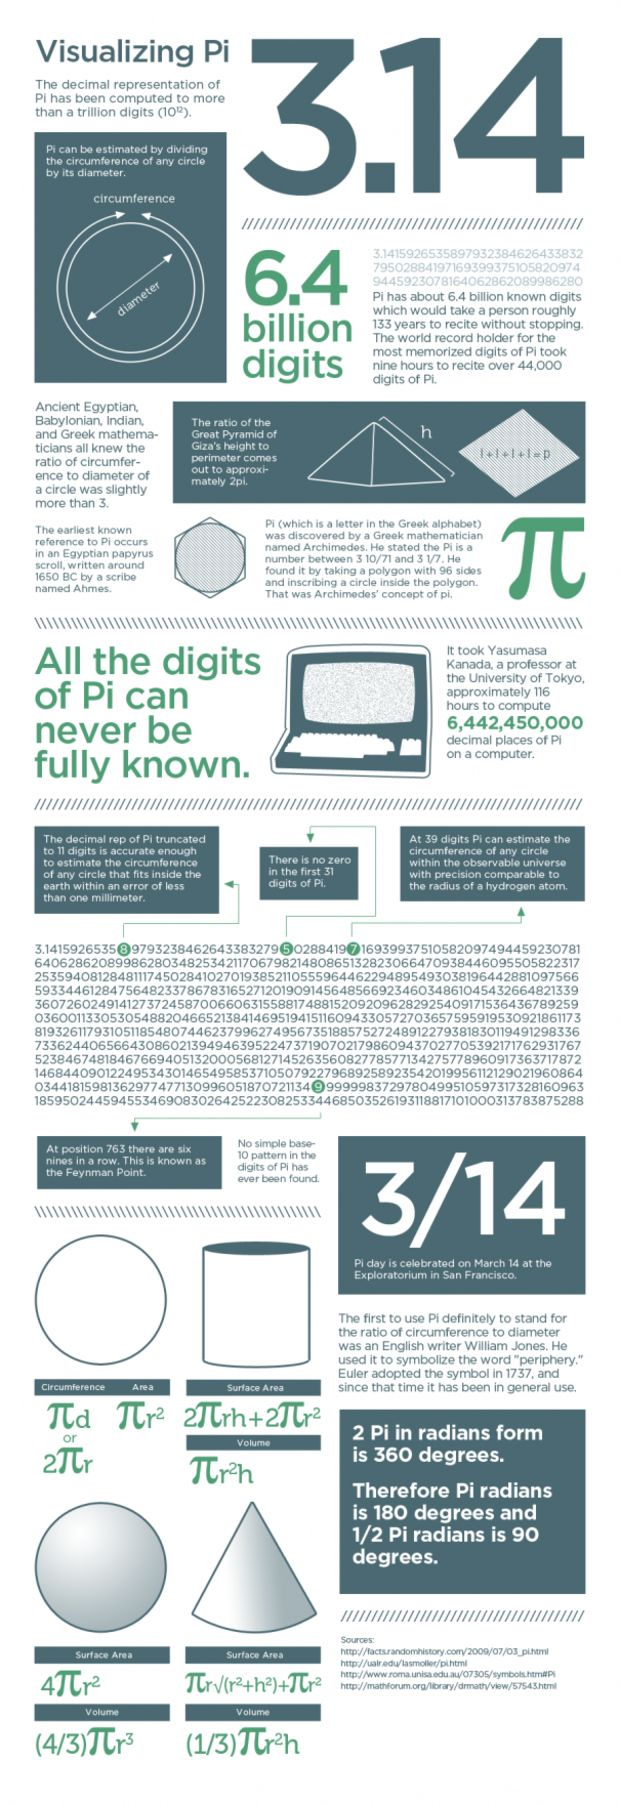 Pi Day 2013: Pi Trivia, Pi Videos, Pi Songs